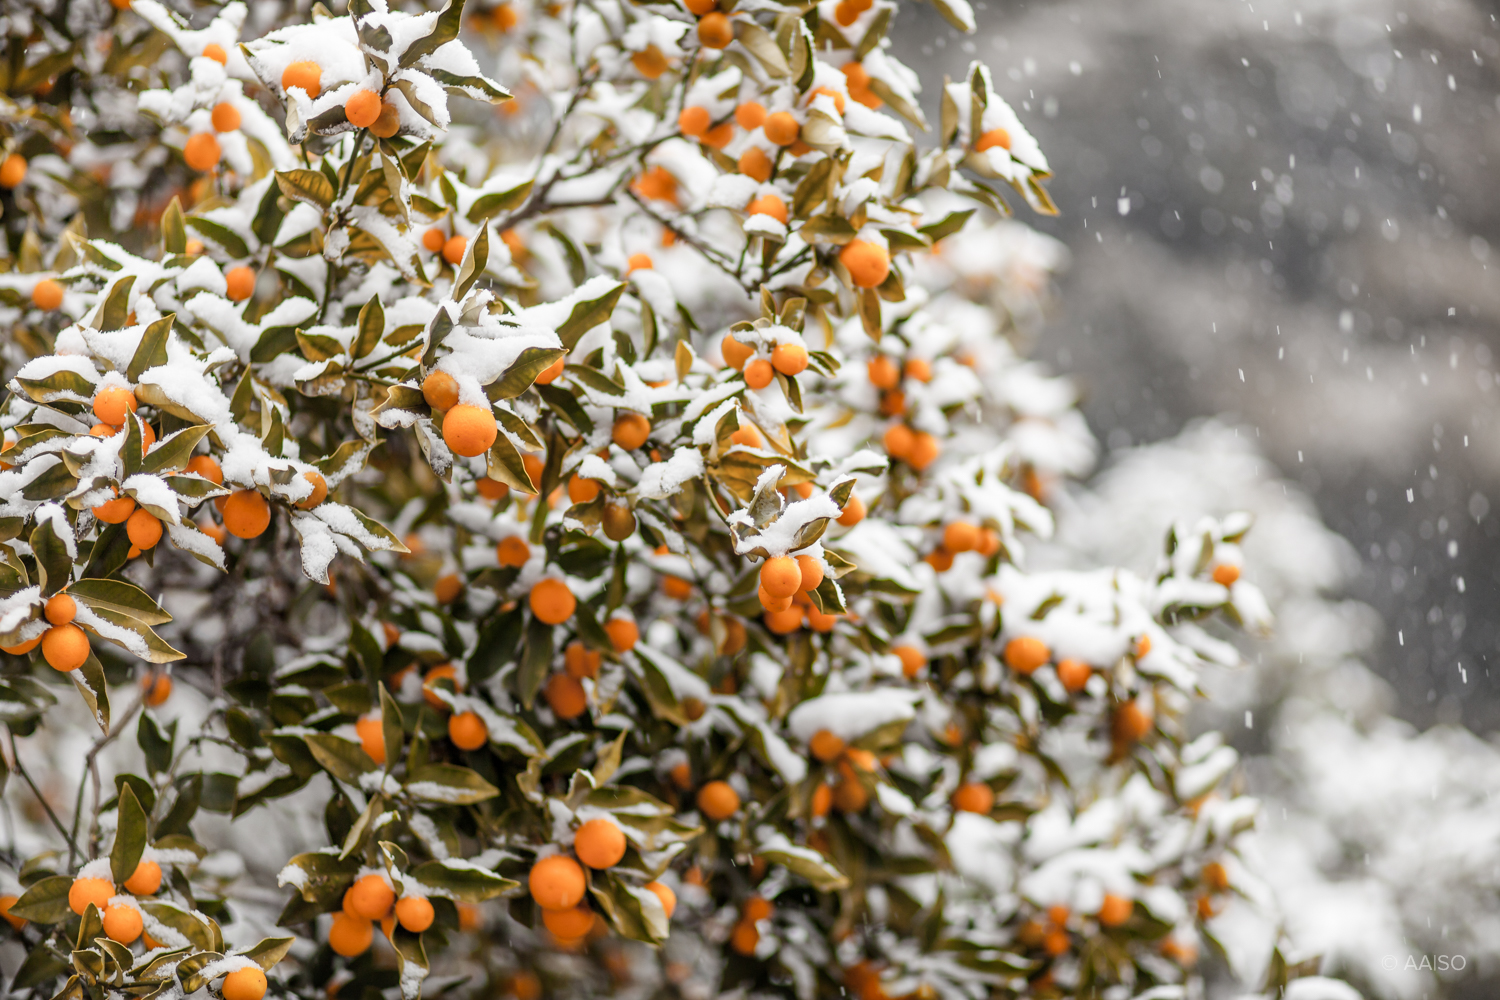 Snow-covered fruits